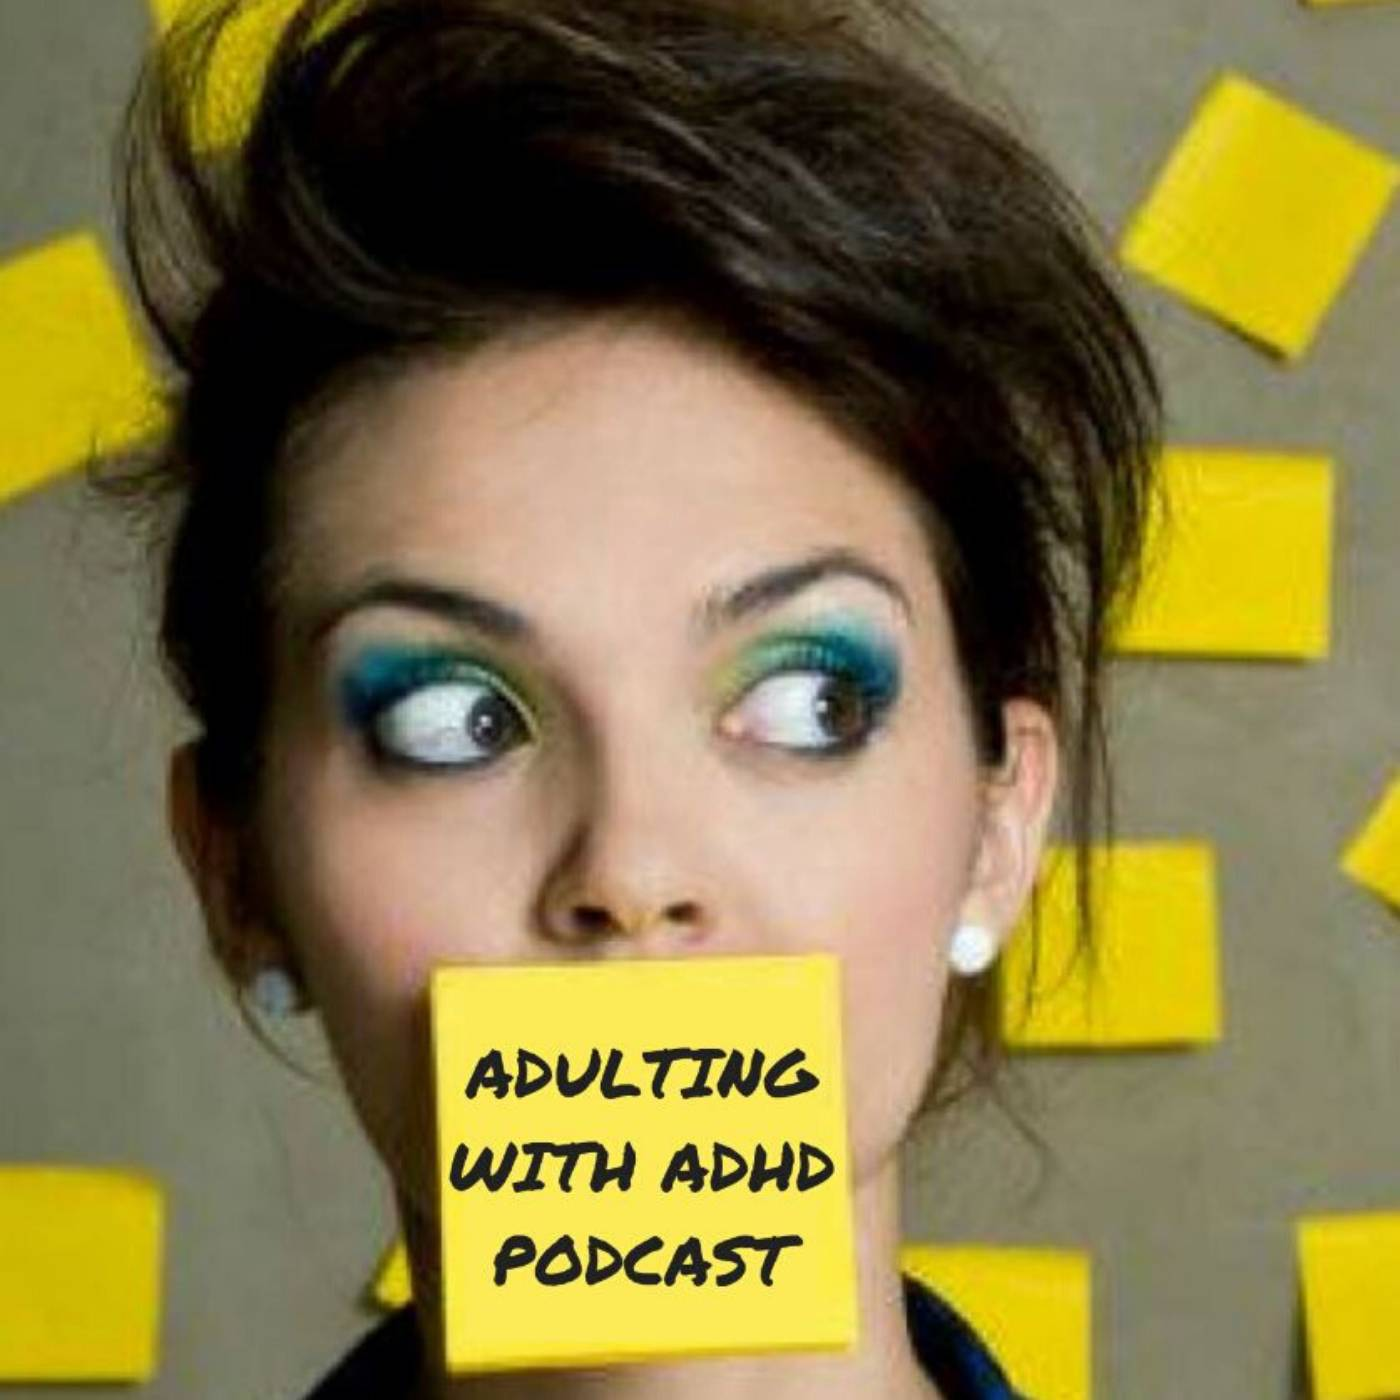 The Adulting With ADHD Podcast show art